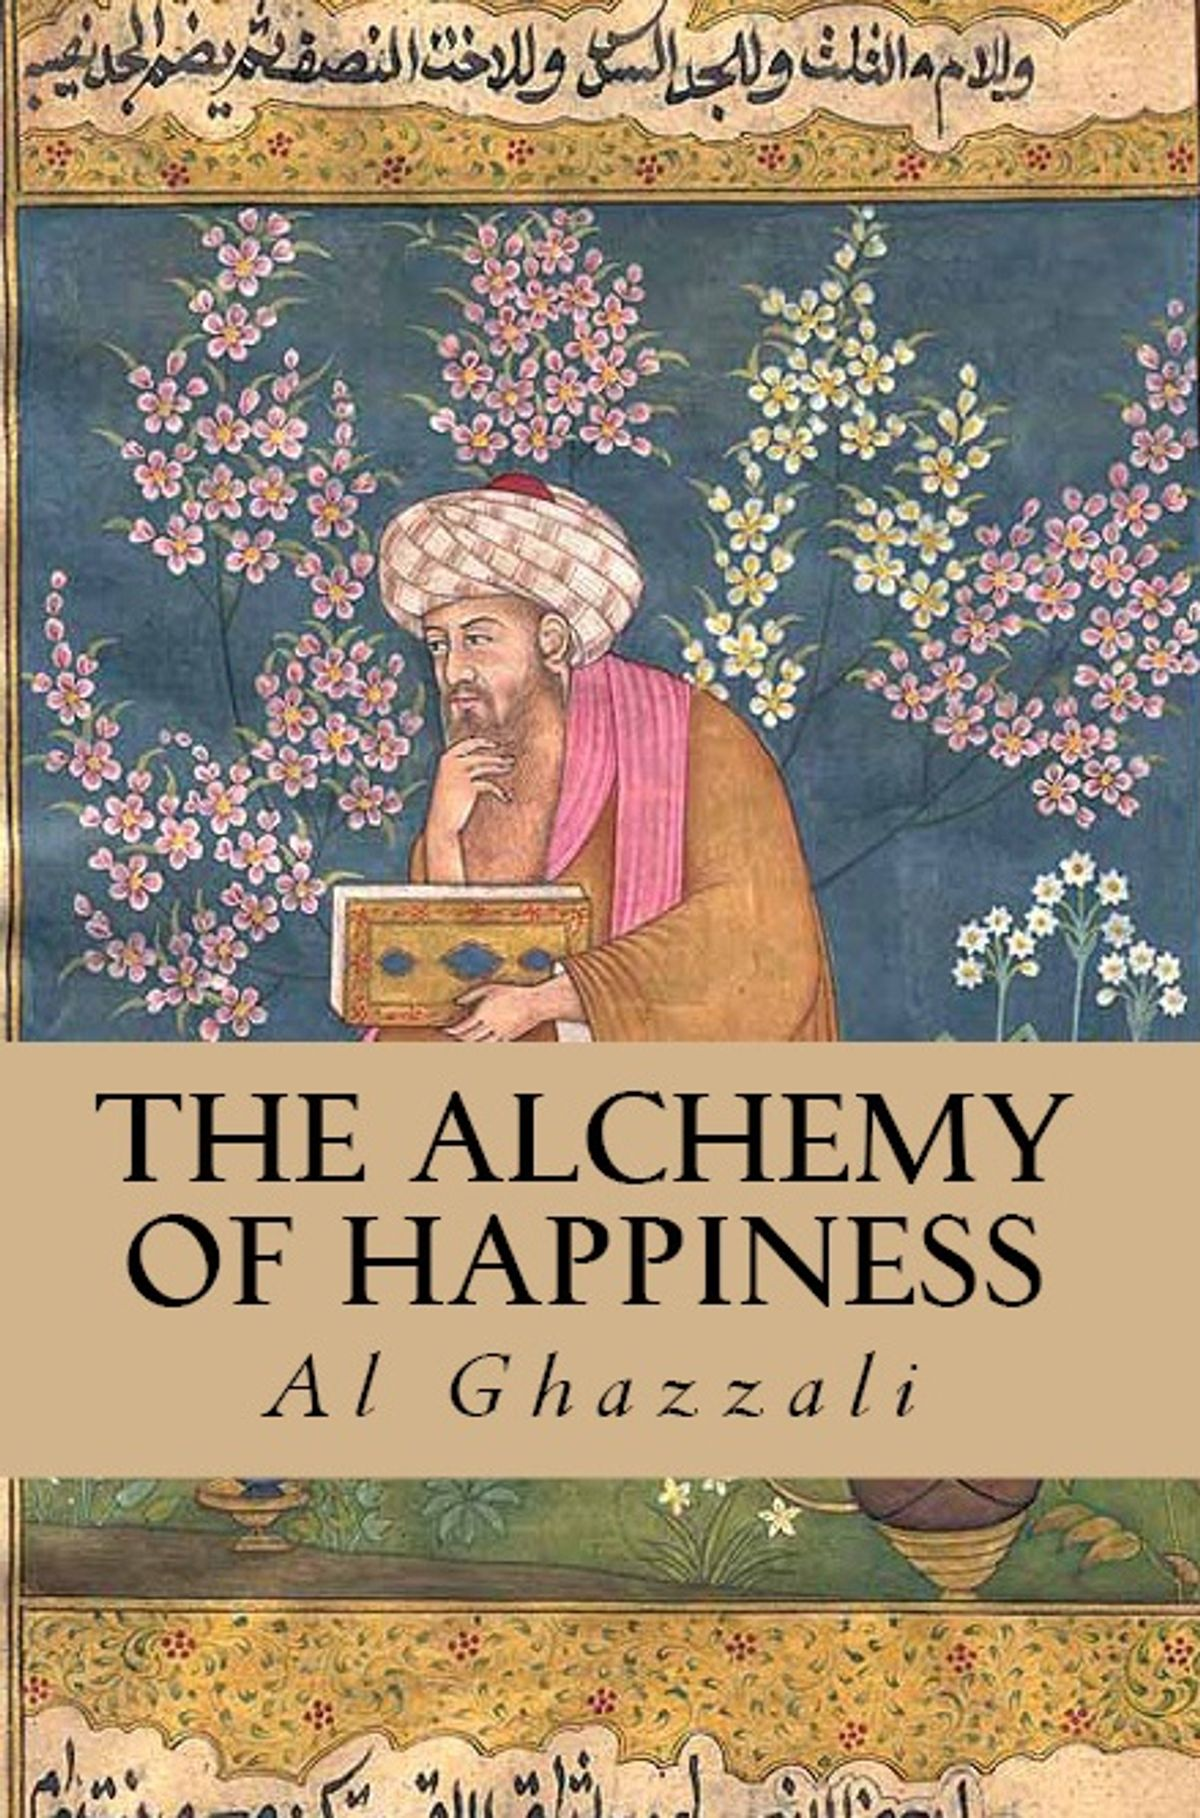 the-alchemy-of-happiness-20.jpg